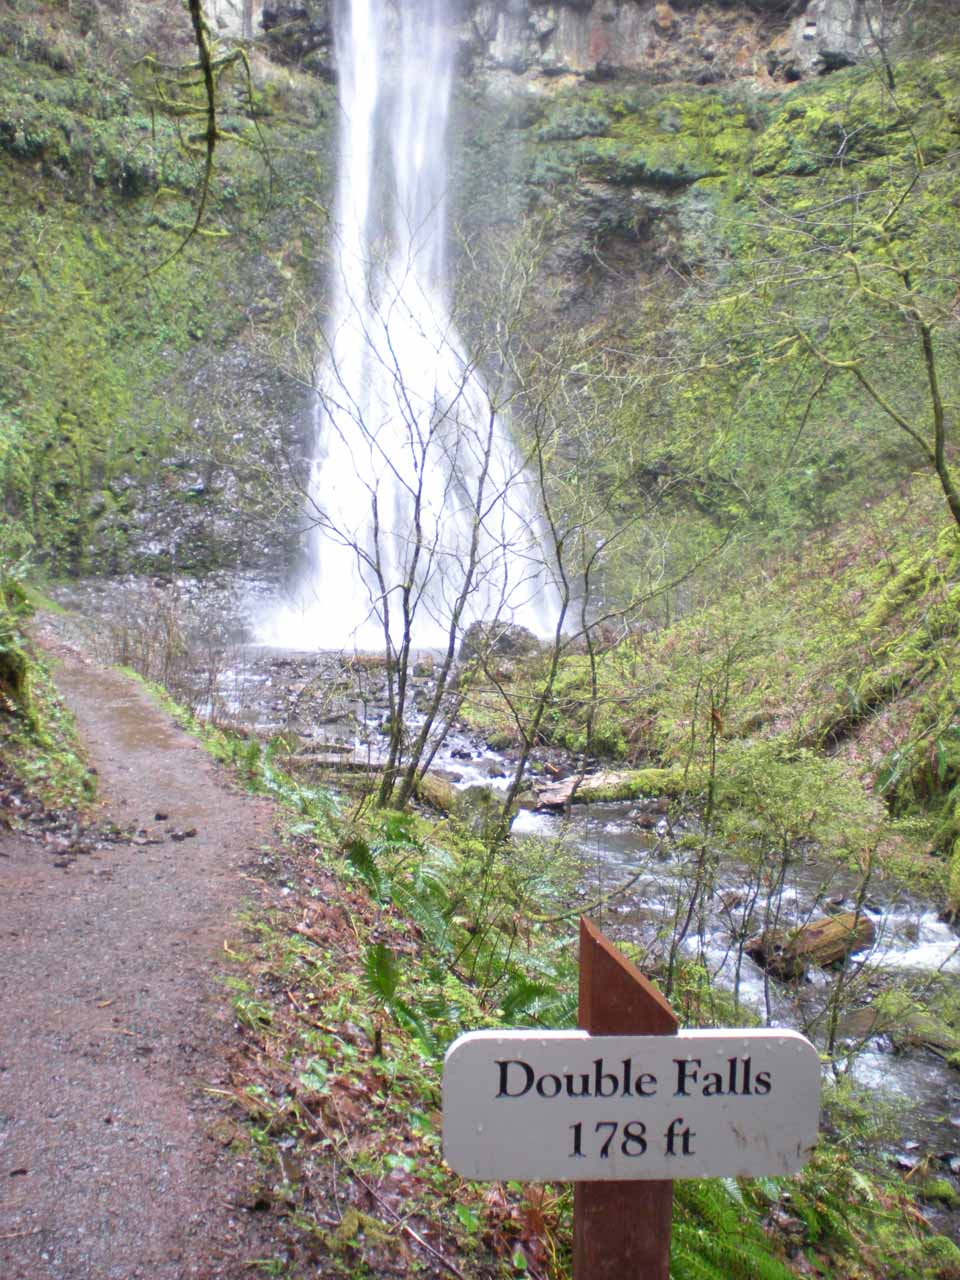 Double Falls fronted by a sign indicating its height